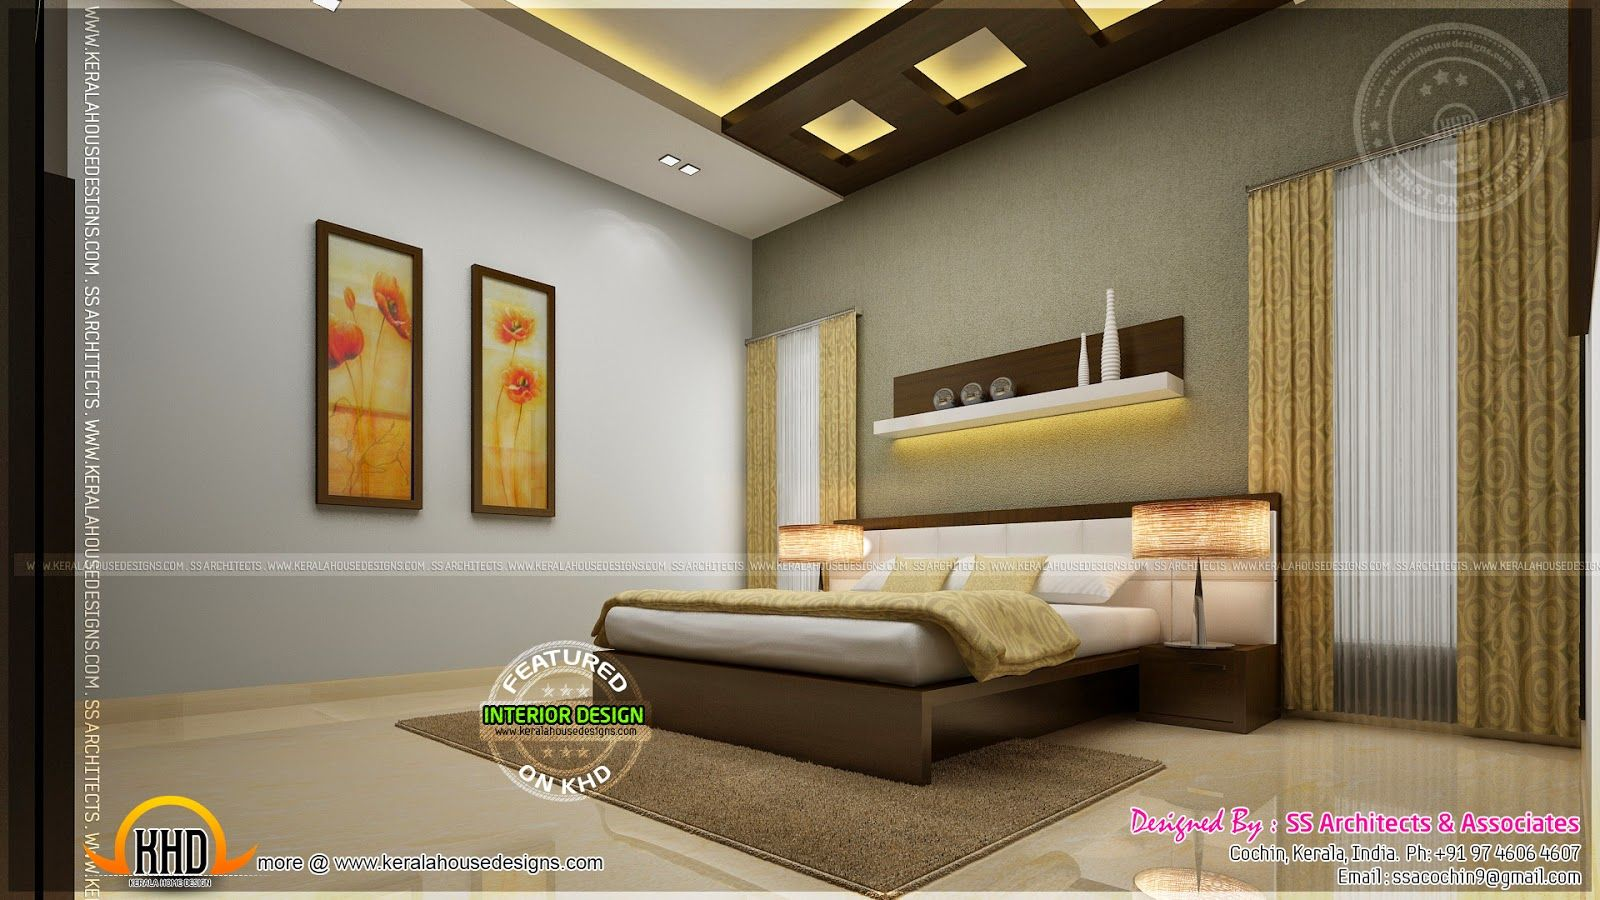 Indian master bedroom interior design google search for Master bedroom designs images